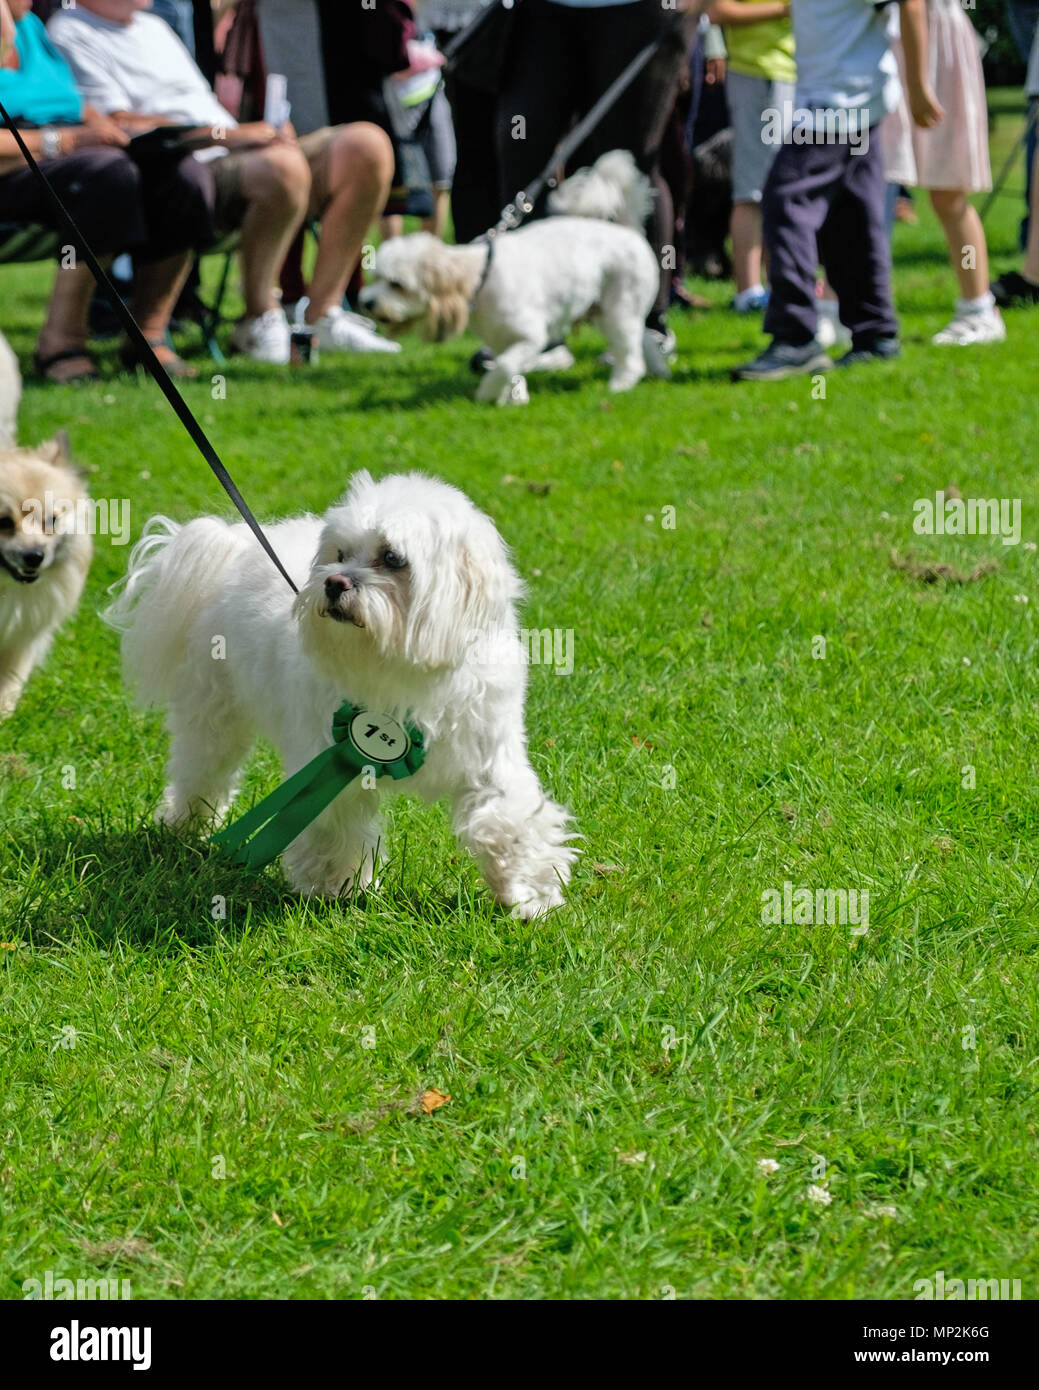 Small white dog with first prize ribbon walks on grass at Dog Show in Canons Park, Edgware, North London at annual Family Fun Day. Copy space. - Stock Image